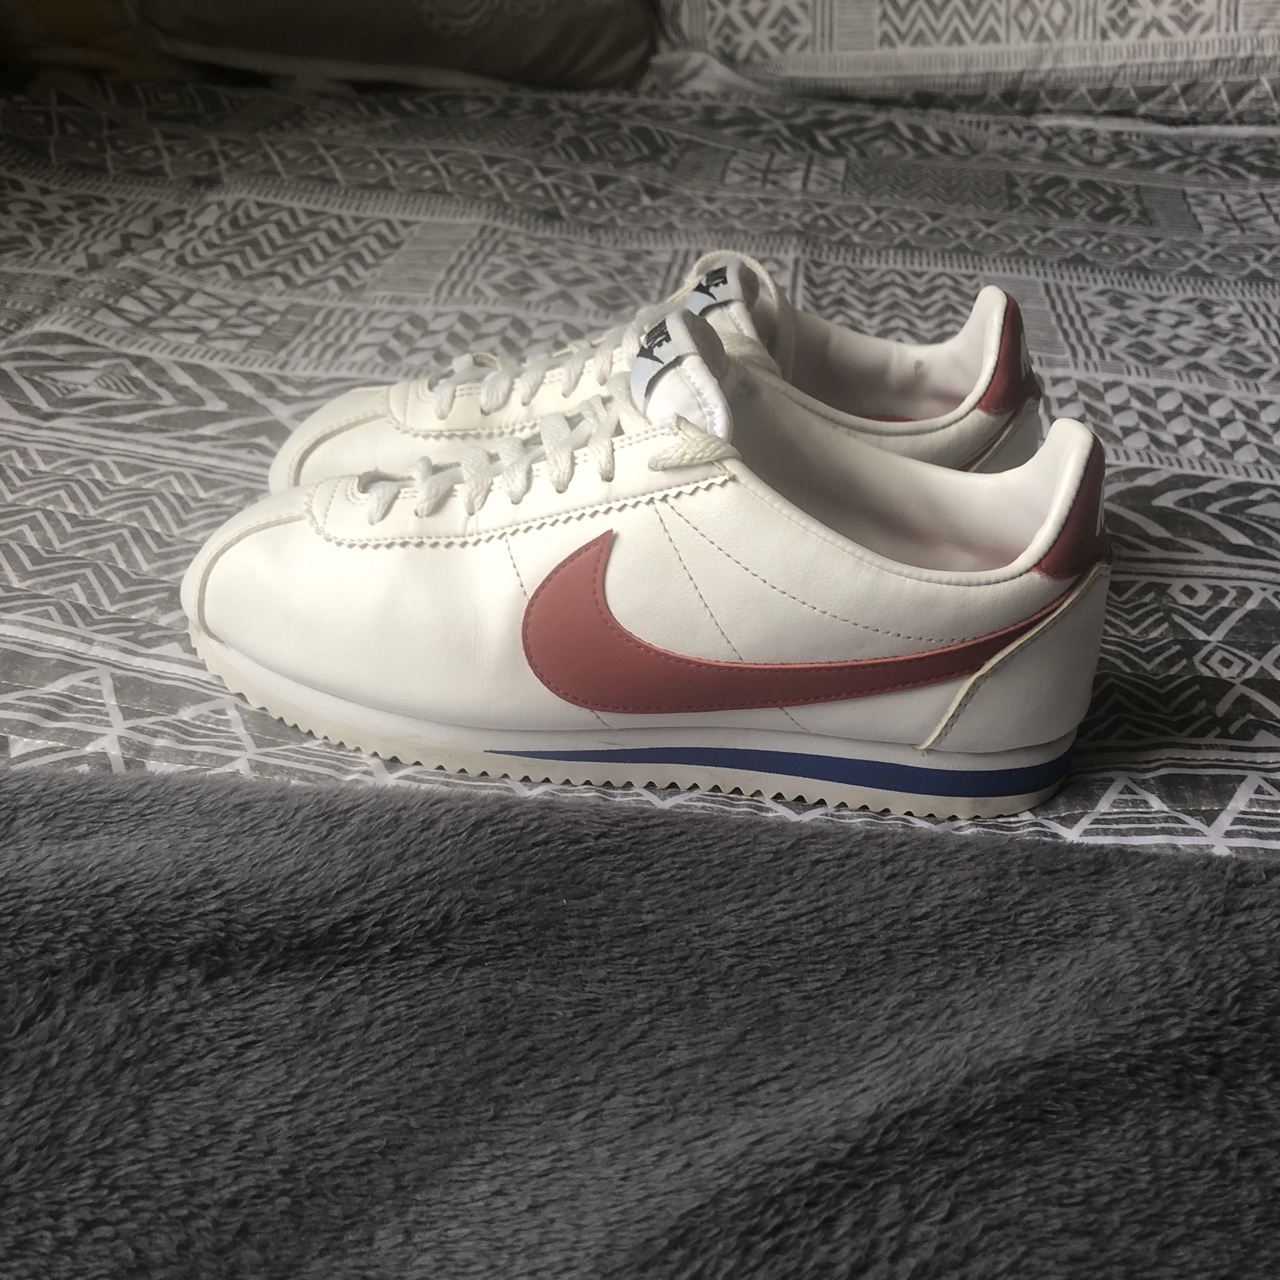 buy popular 4a6fc 56a9b Nike Cortez White leather w/red swoosh and blue... - Depop